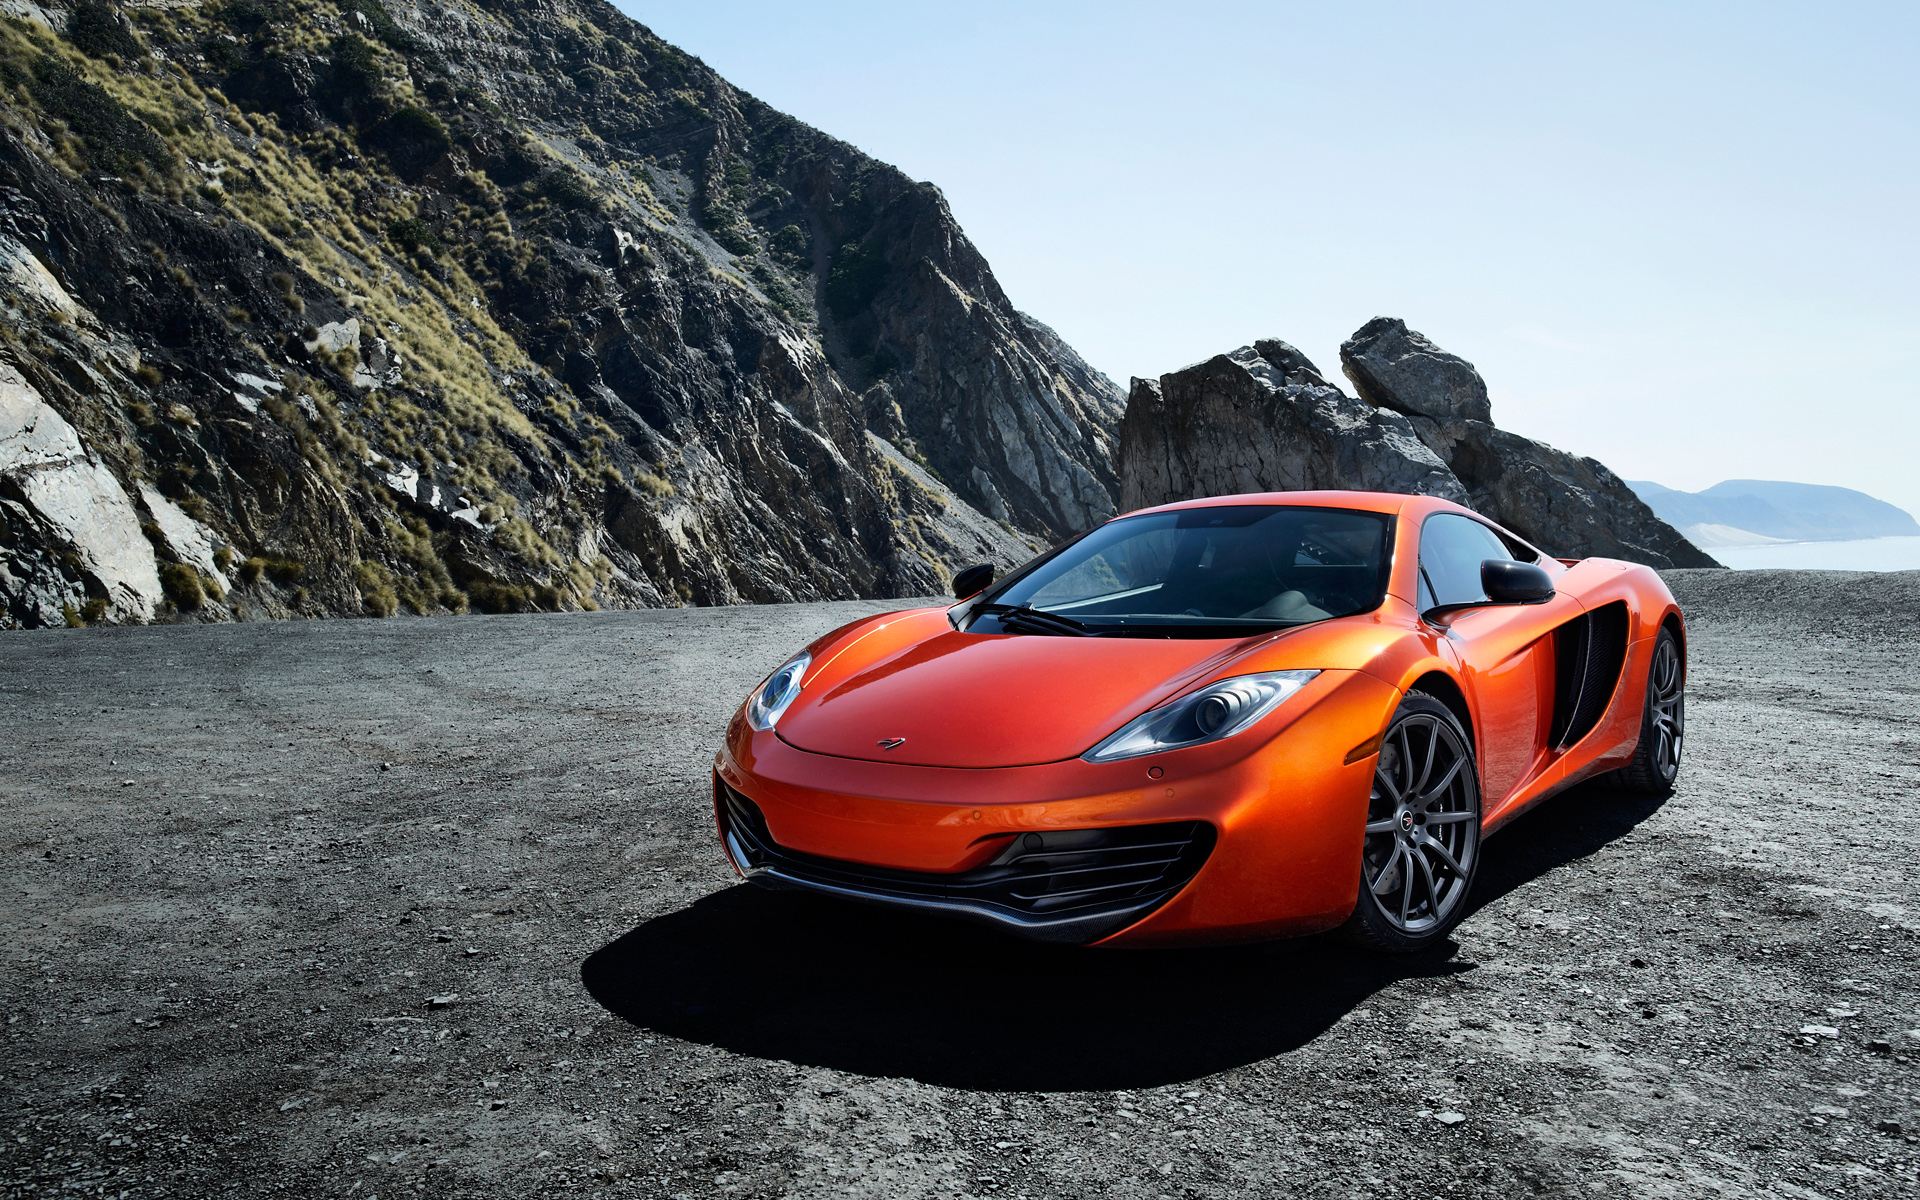 mclaren mp4 12c wallpaper hd car wallpapers id 2668. Black Bedroom Furniture Sets. Home Design Ideas